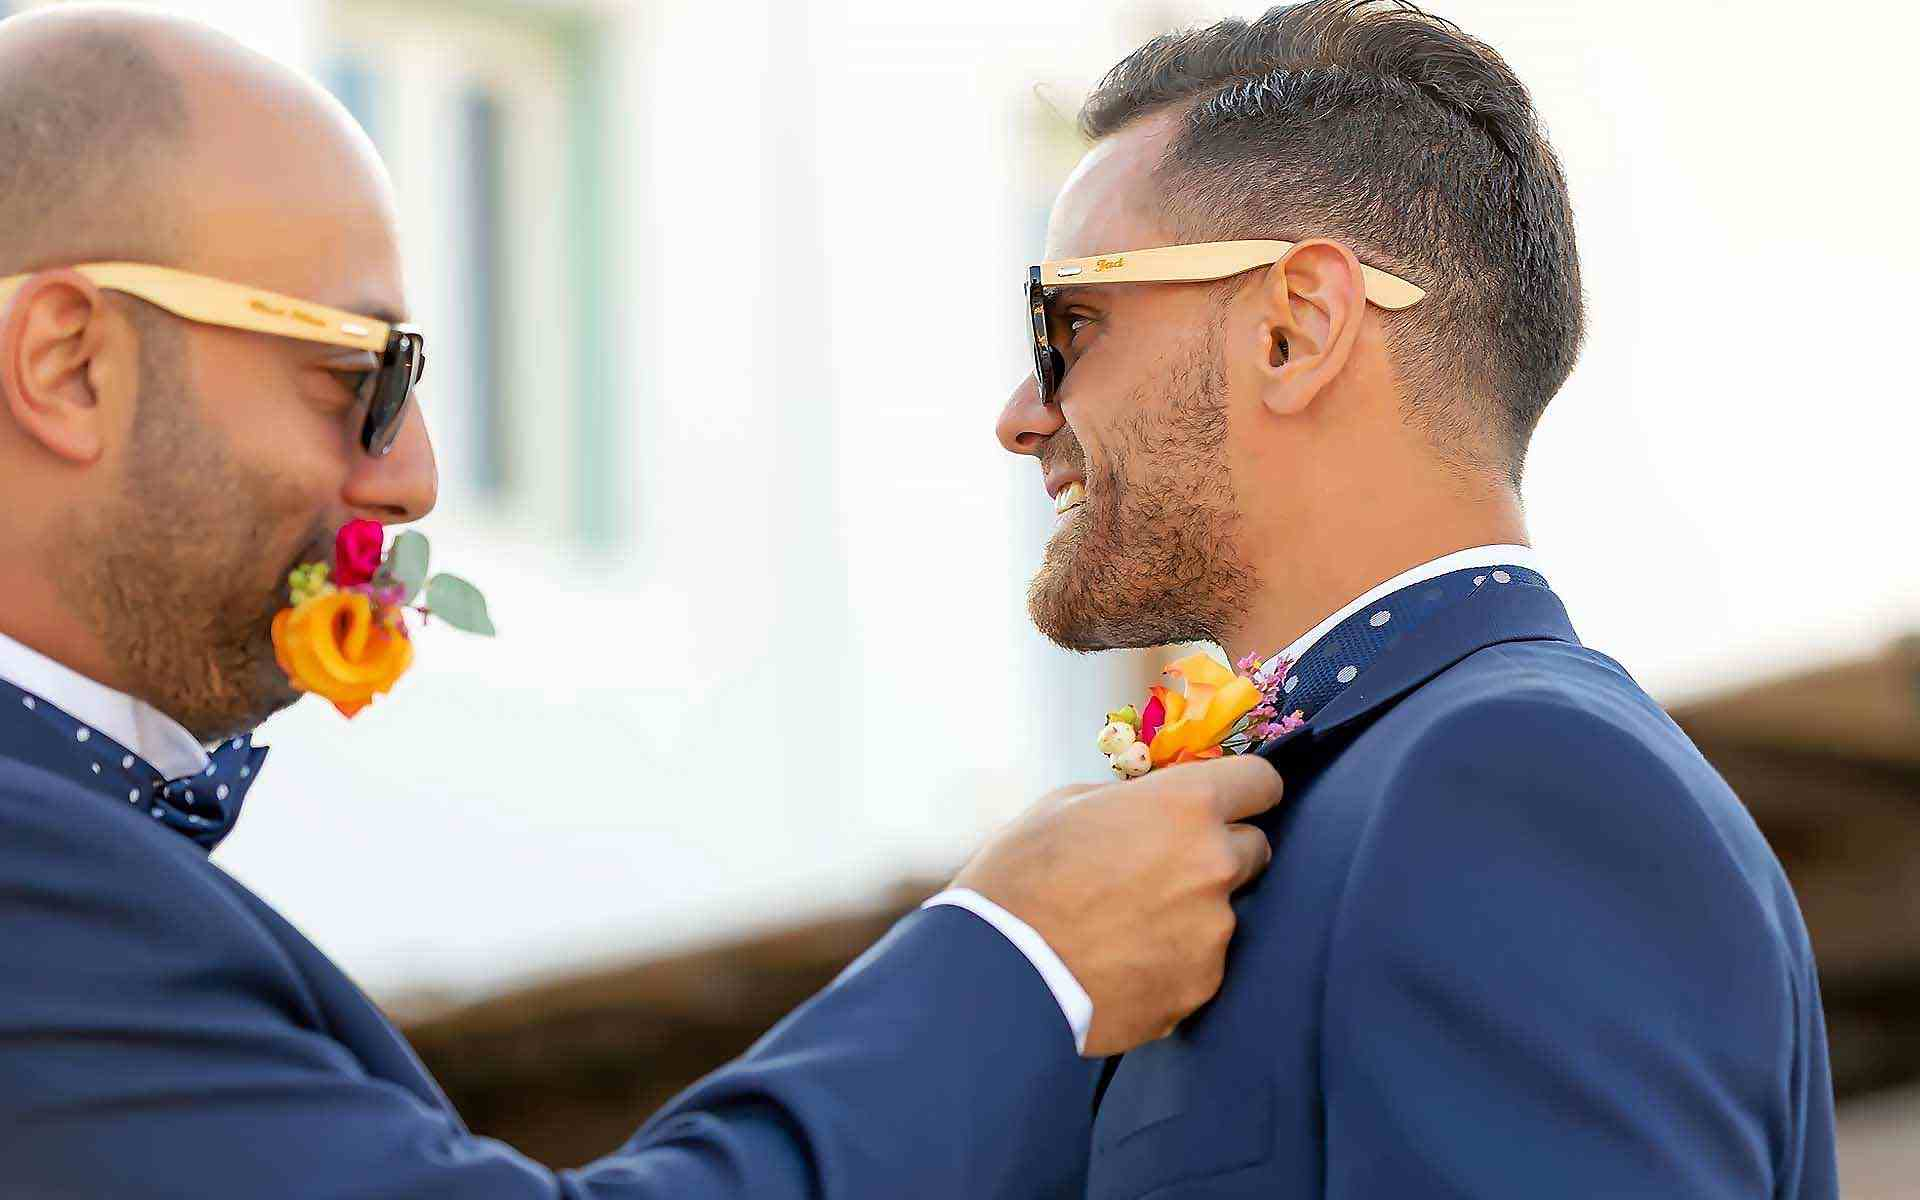 The-Brother-Of-The-Groom-Is-Putting-The-Boho-Style-Boutonniere-To-The-Groom